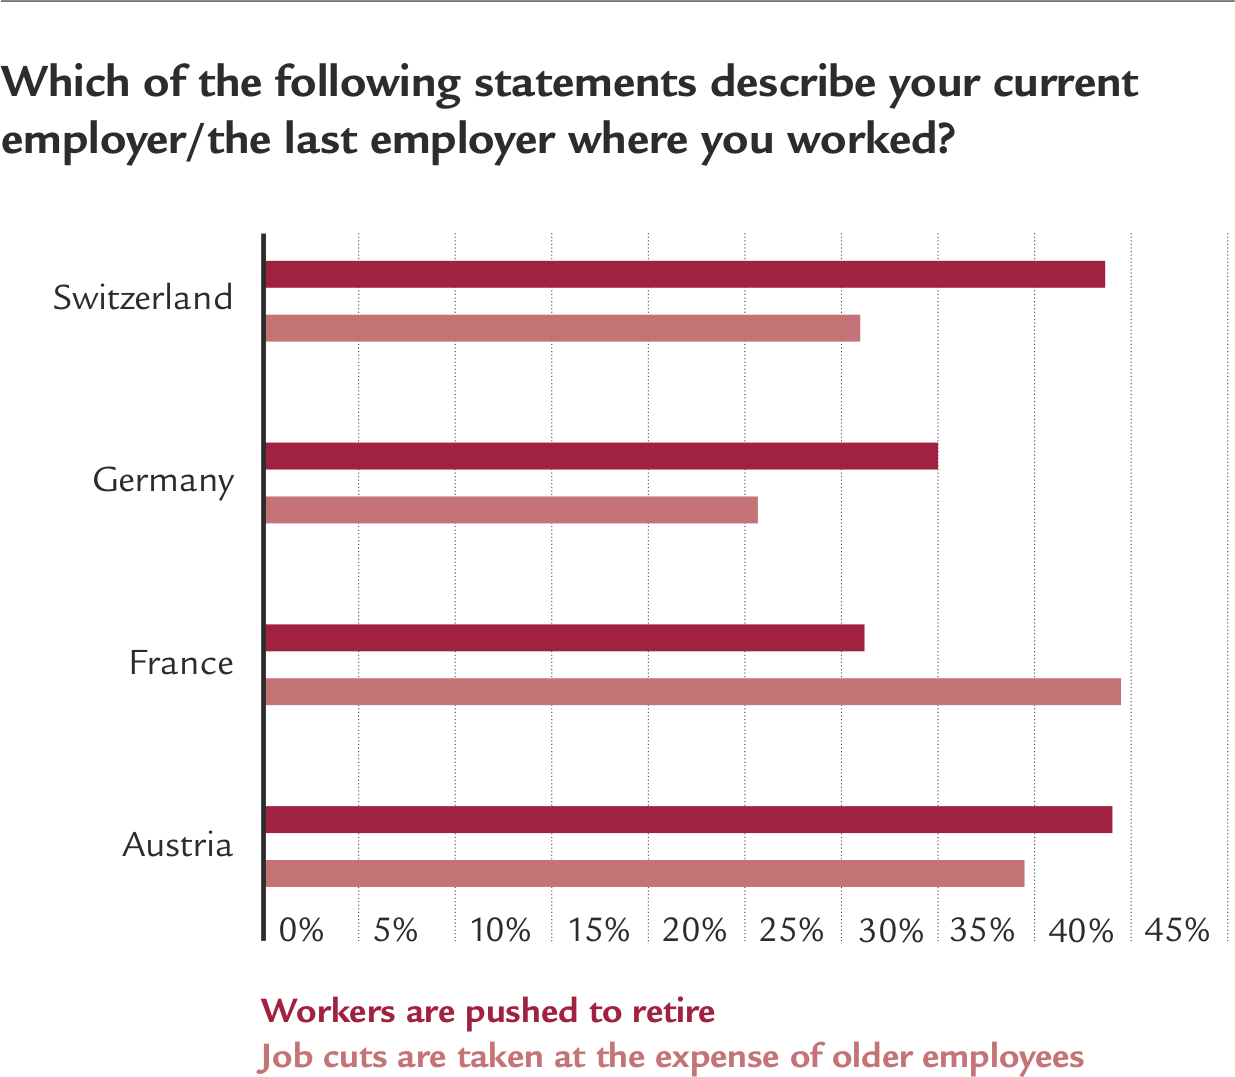 Chart: Which of the following statements describe your current employer/the last employer where you worked?